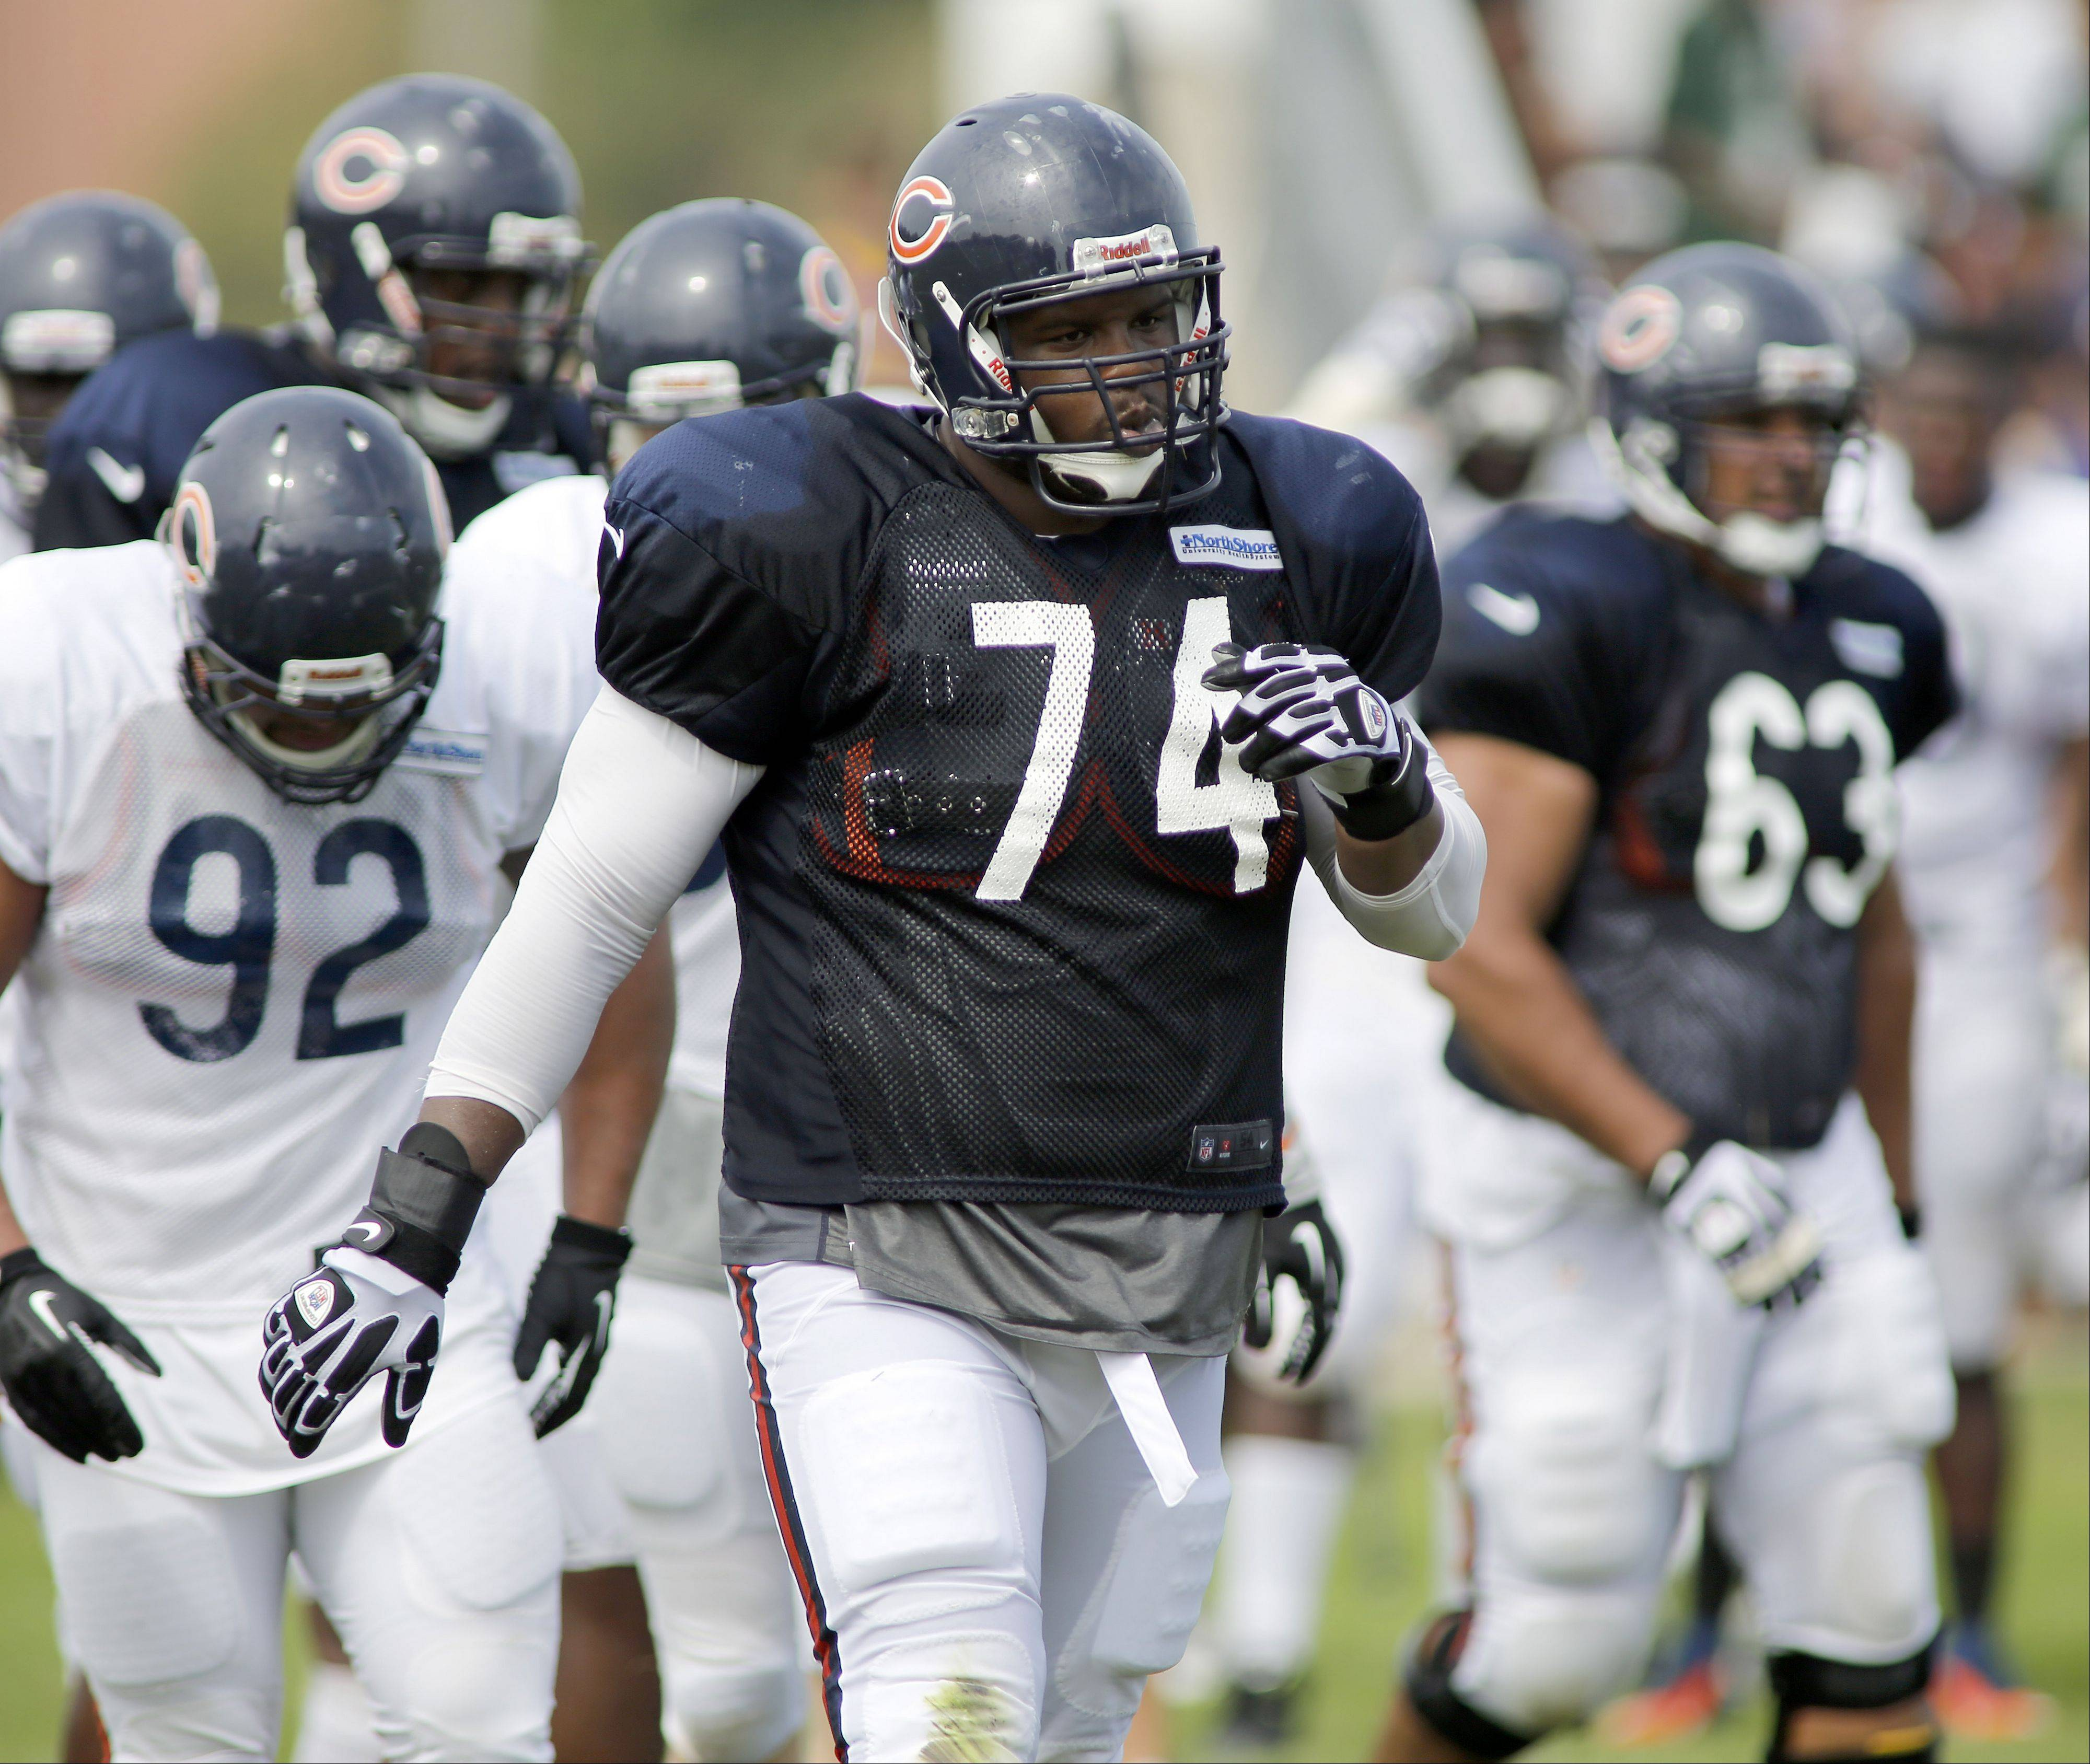 Chicago Bears tackle Jermon Bushrod (74) during the Chicago Bears training camp on the campus of Olivet Nazarene University in Bourbonnais, Wednesday.